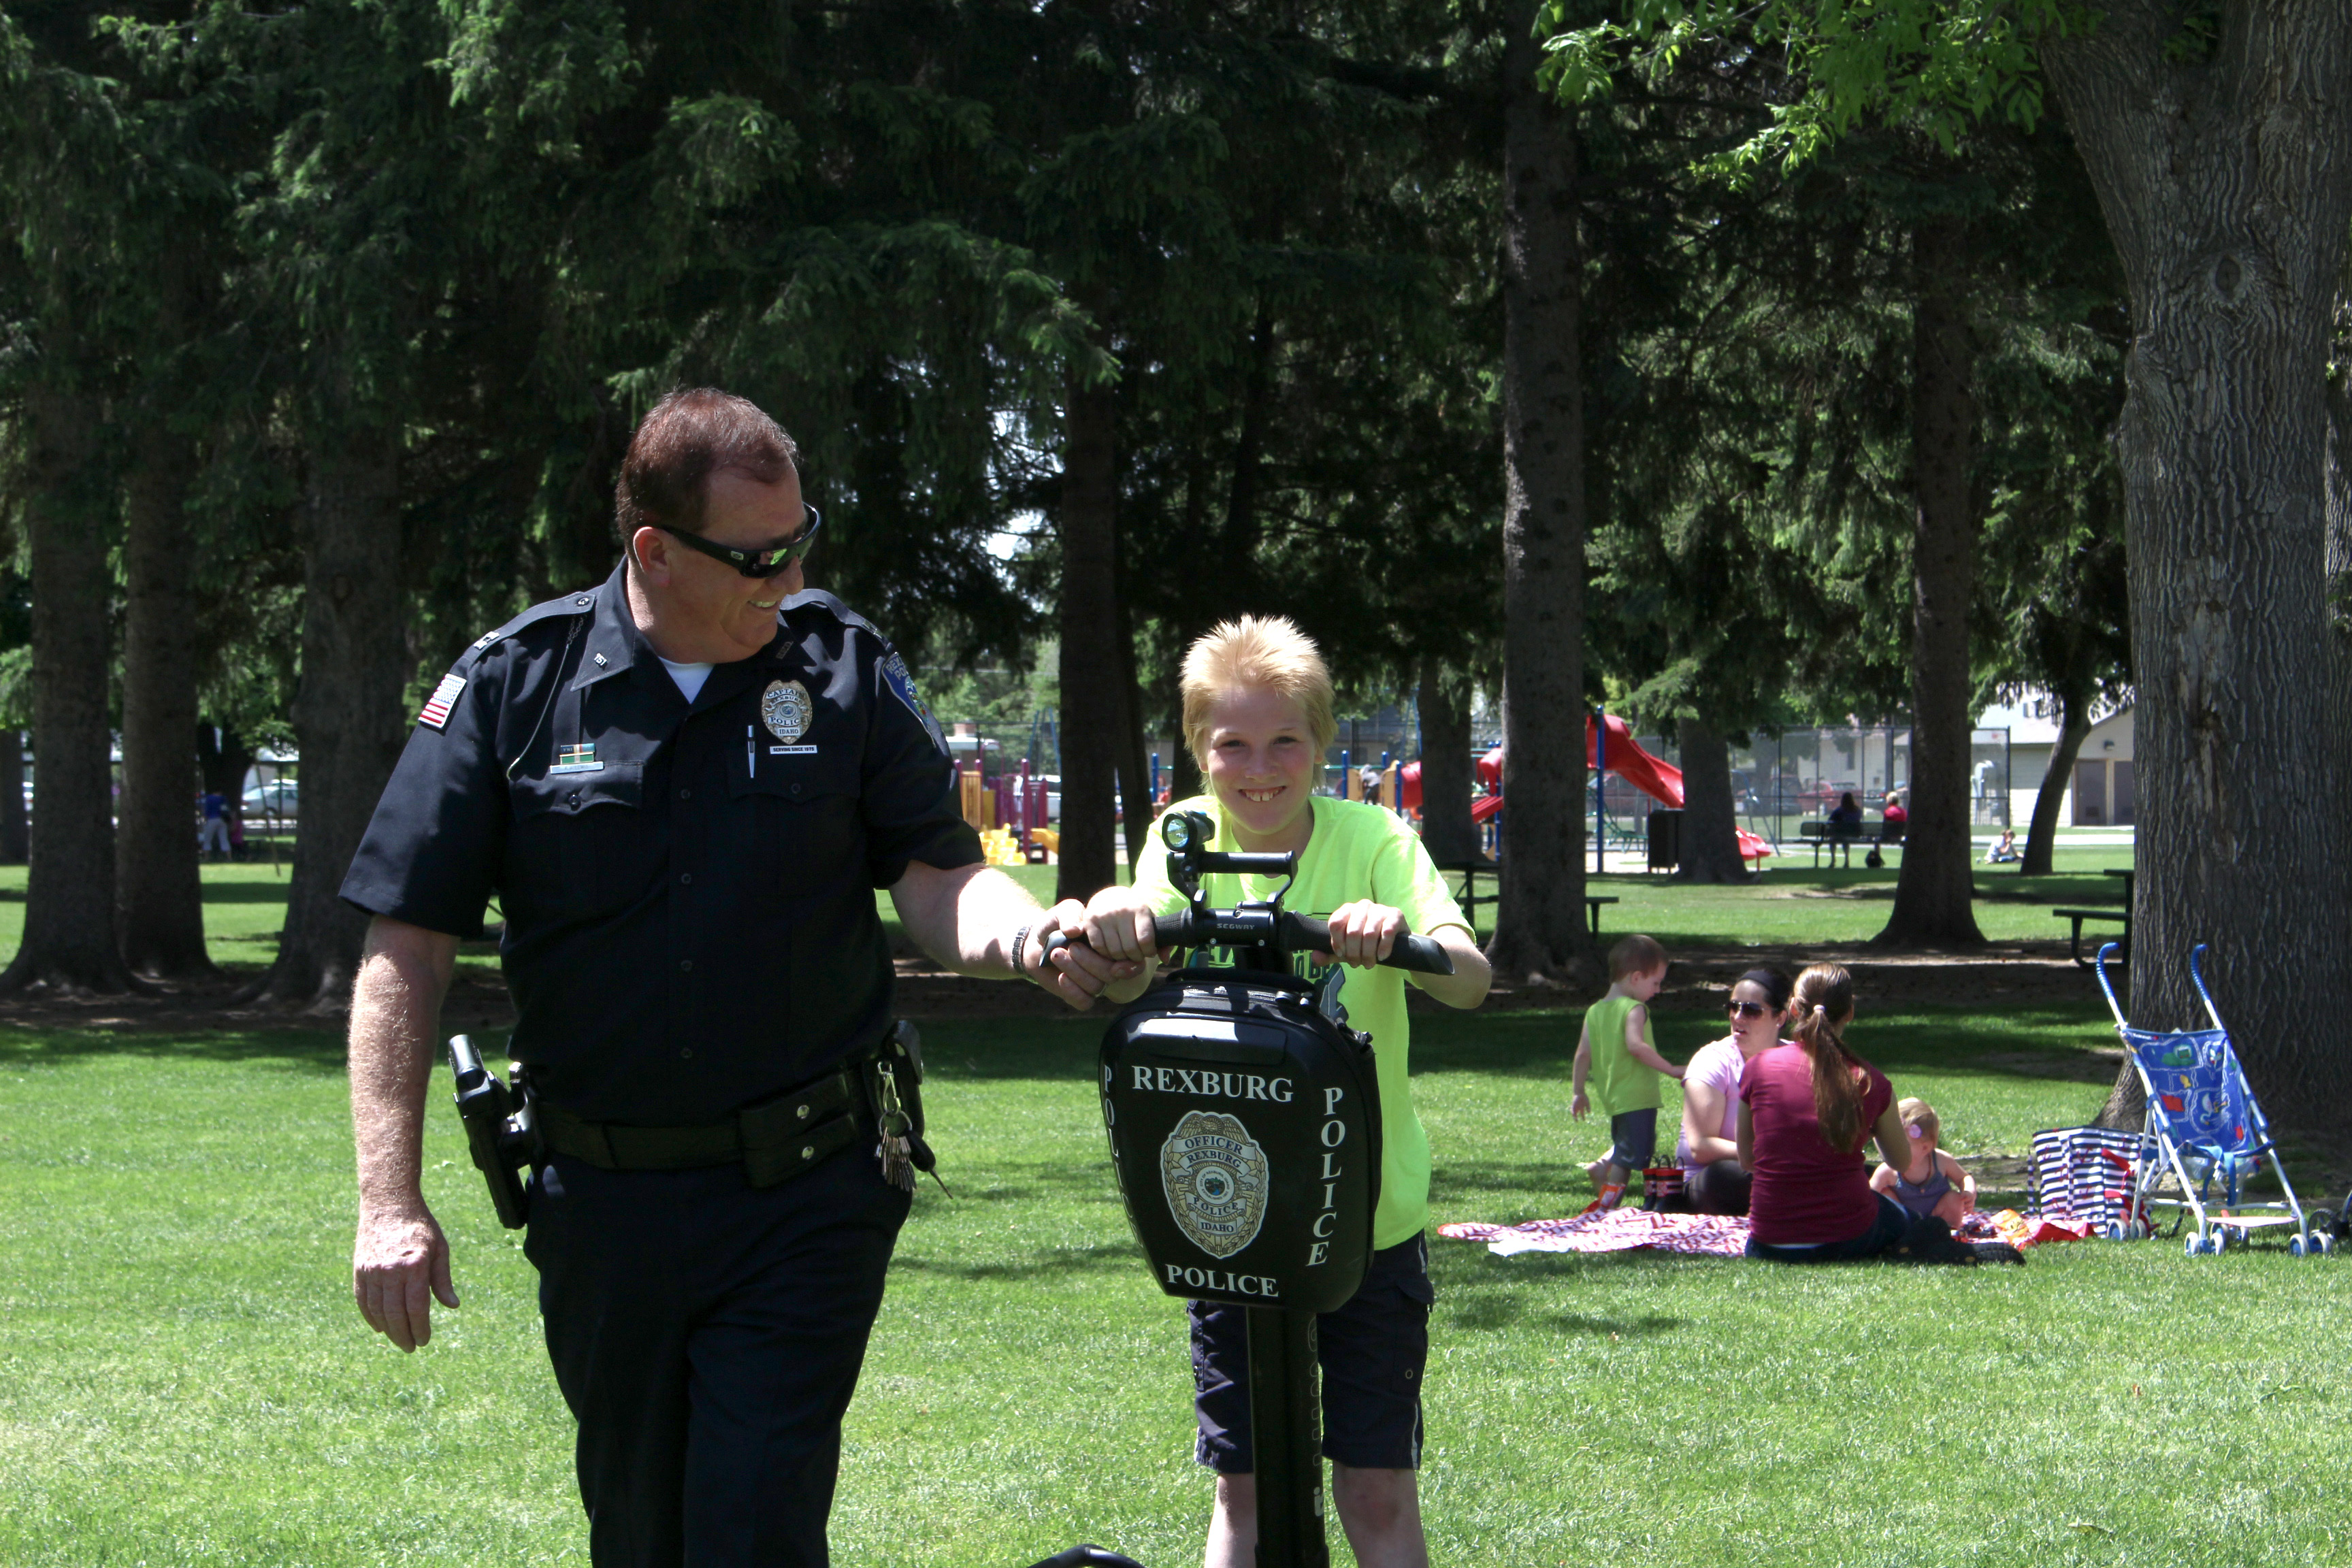 Rexburg Police Department hosts picnic for those with special needs